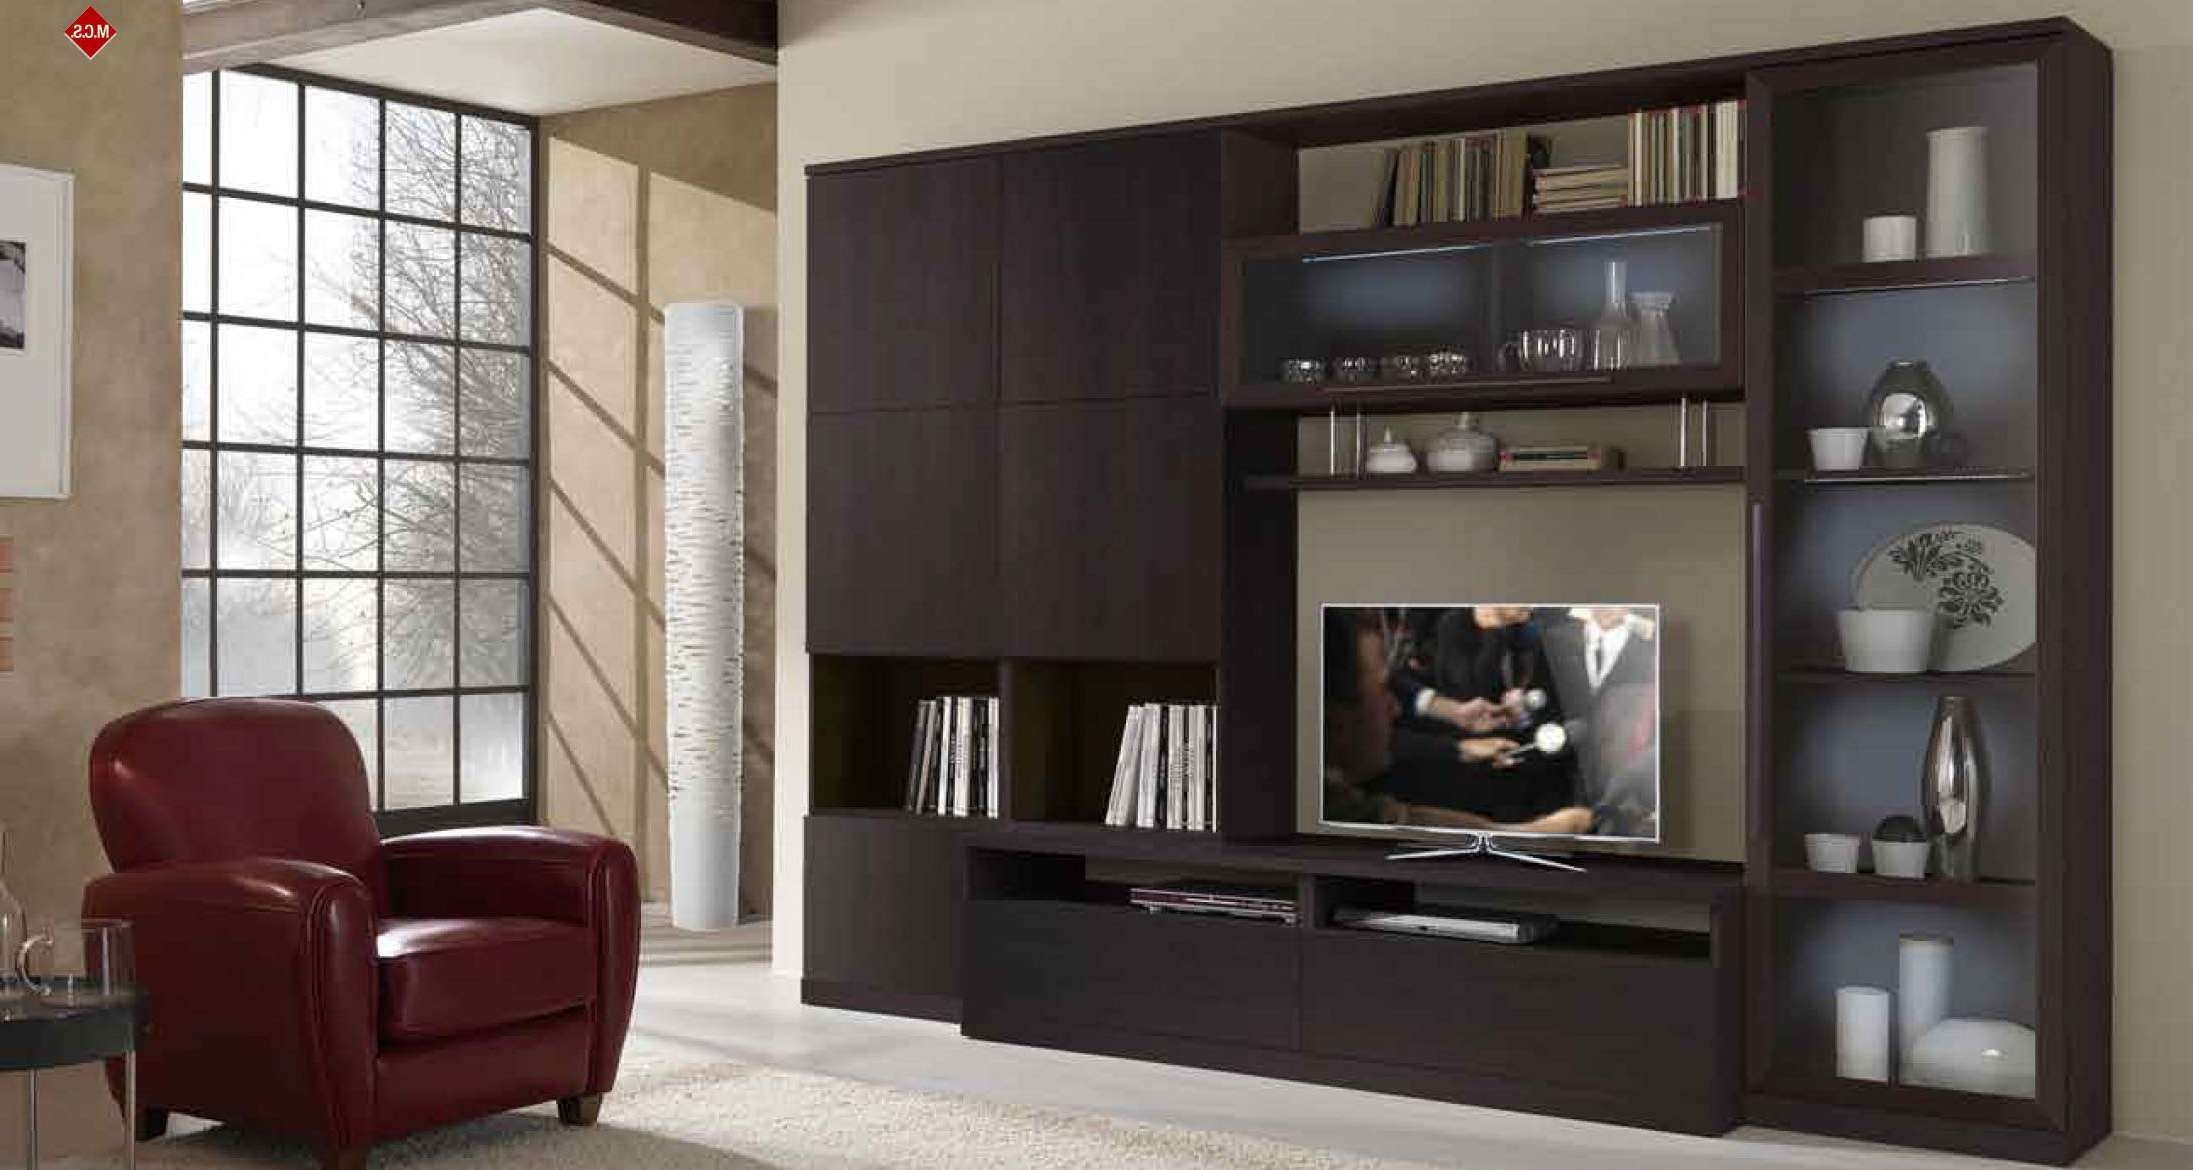 20 Modern Tv Unit Design Ideas For Bedroom & Living Room With Pictures With Regard To Modern Tv Cabinets Designs (View 18 of 20)